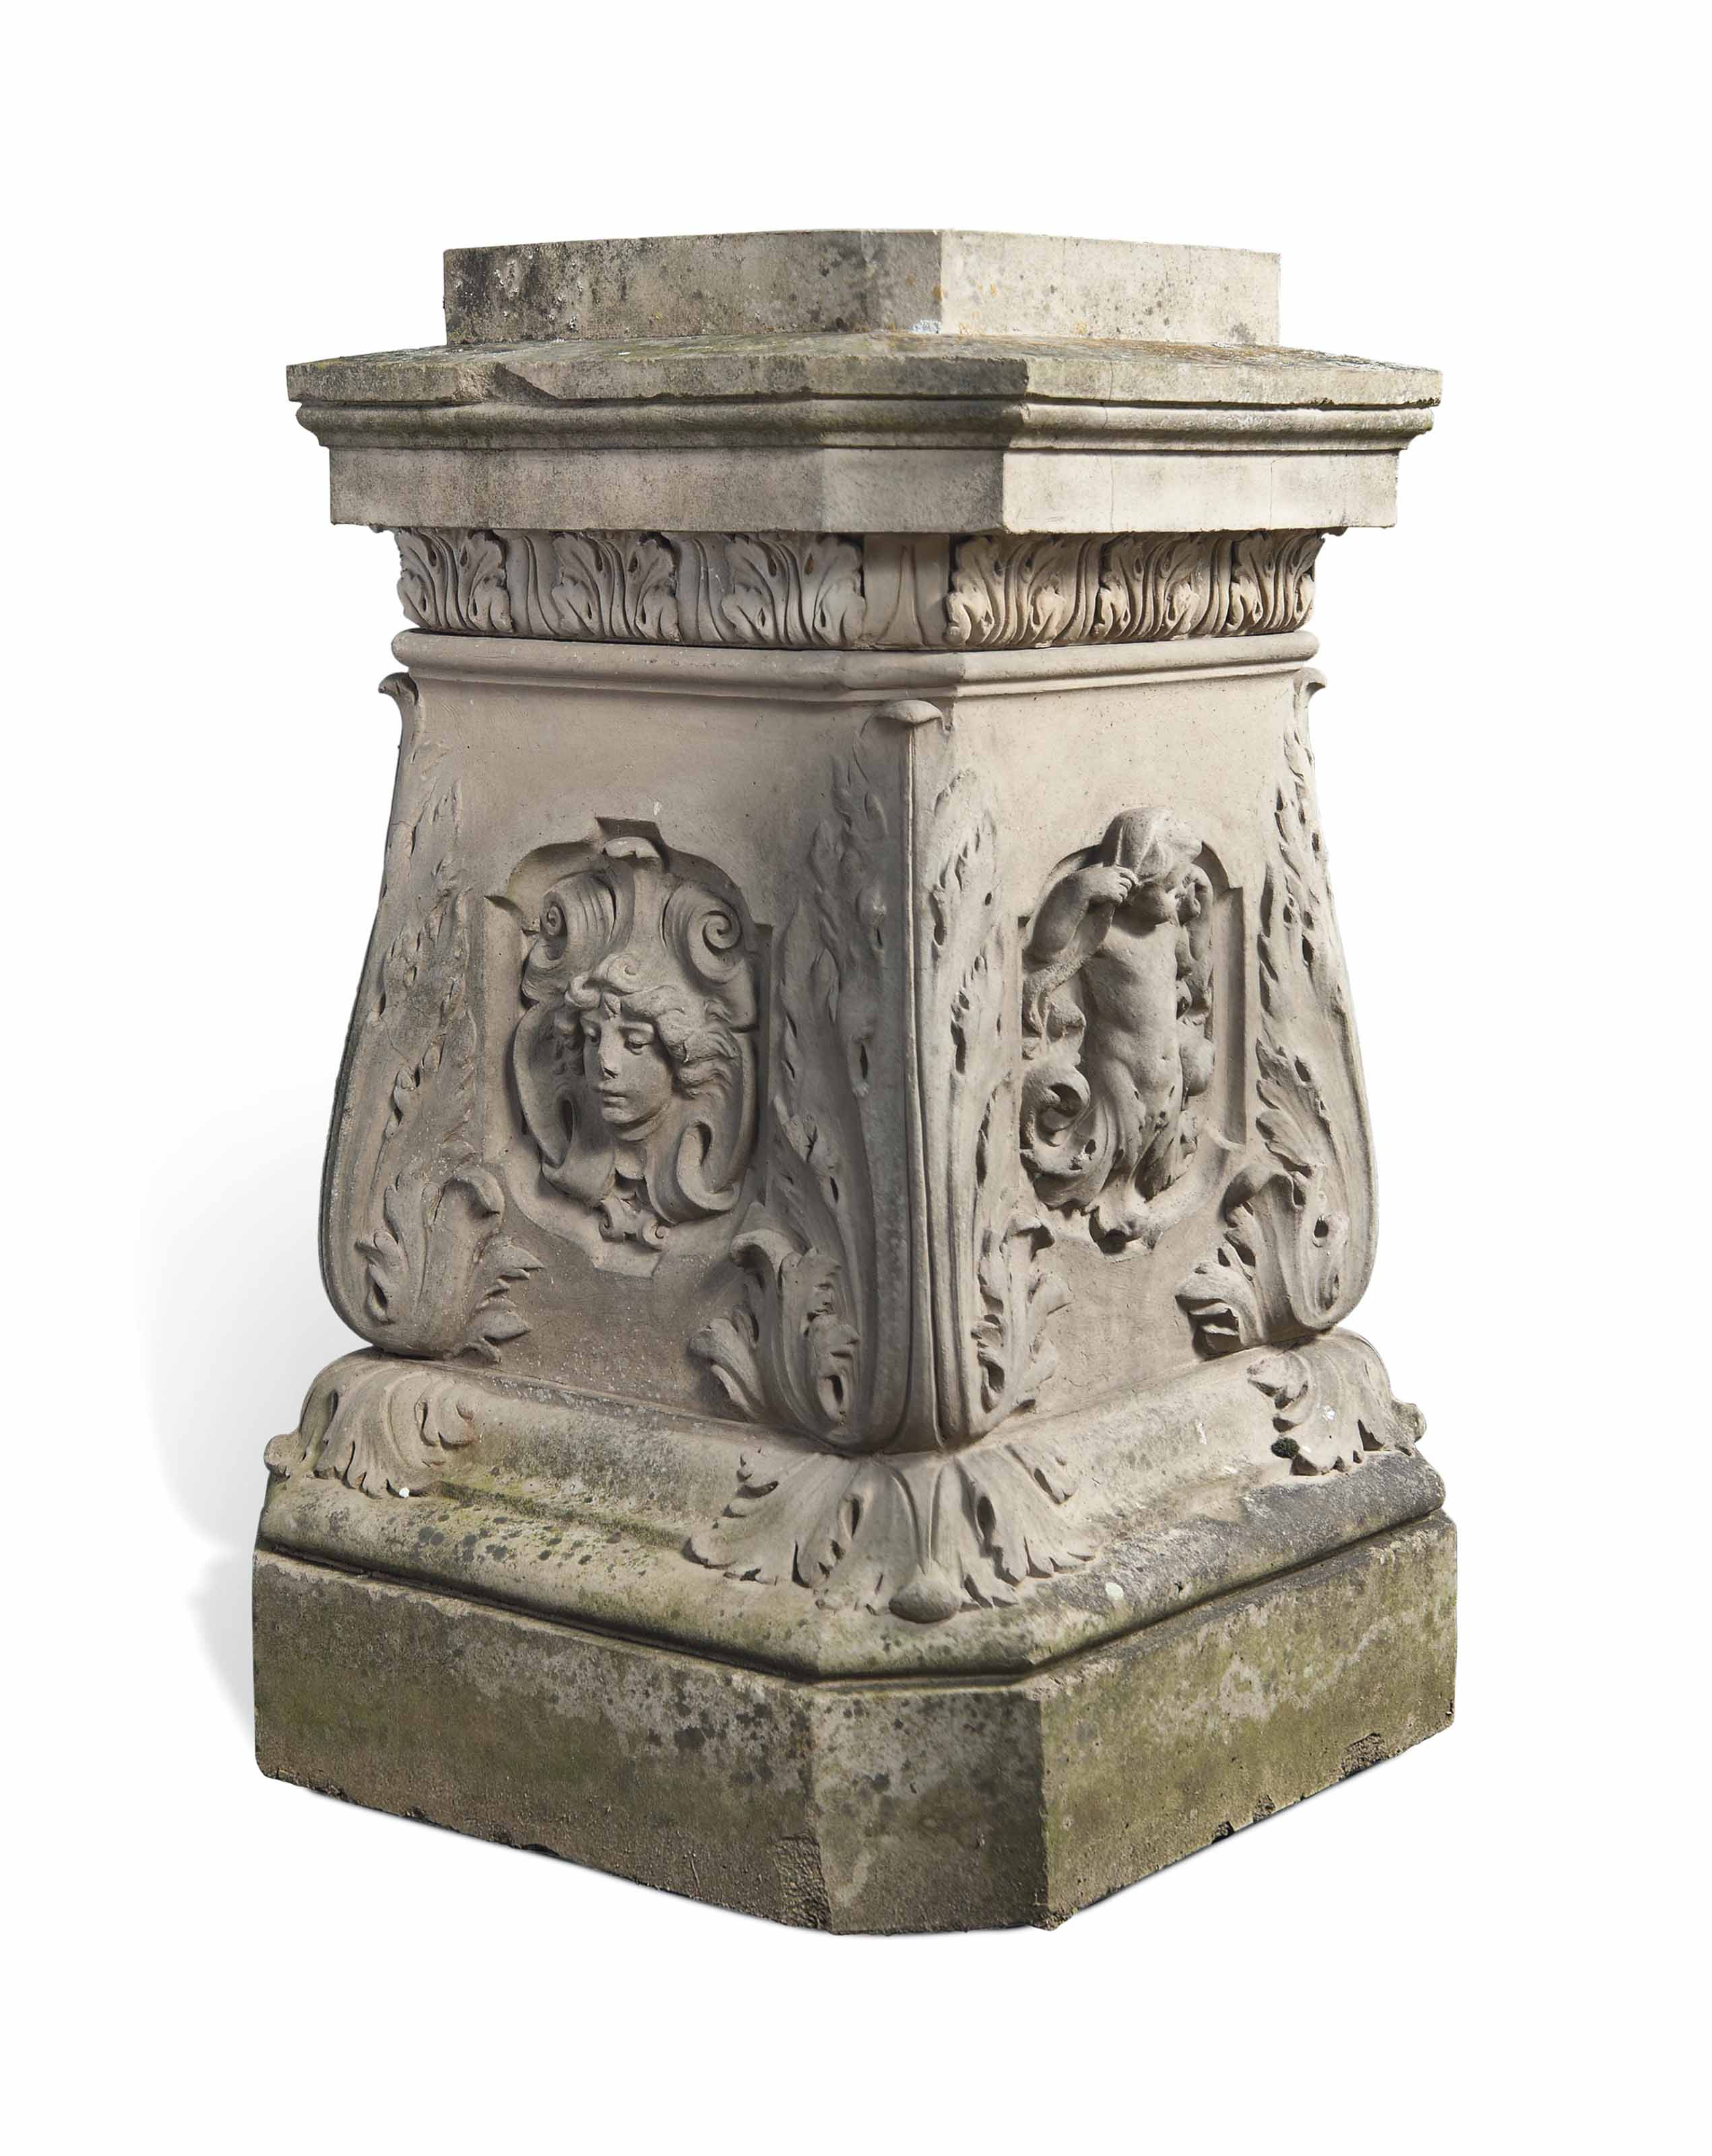 A LATE VICTORIAN OR EDWARDIAN TERRACOTTA PEDESTAL